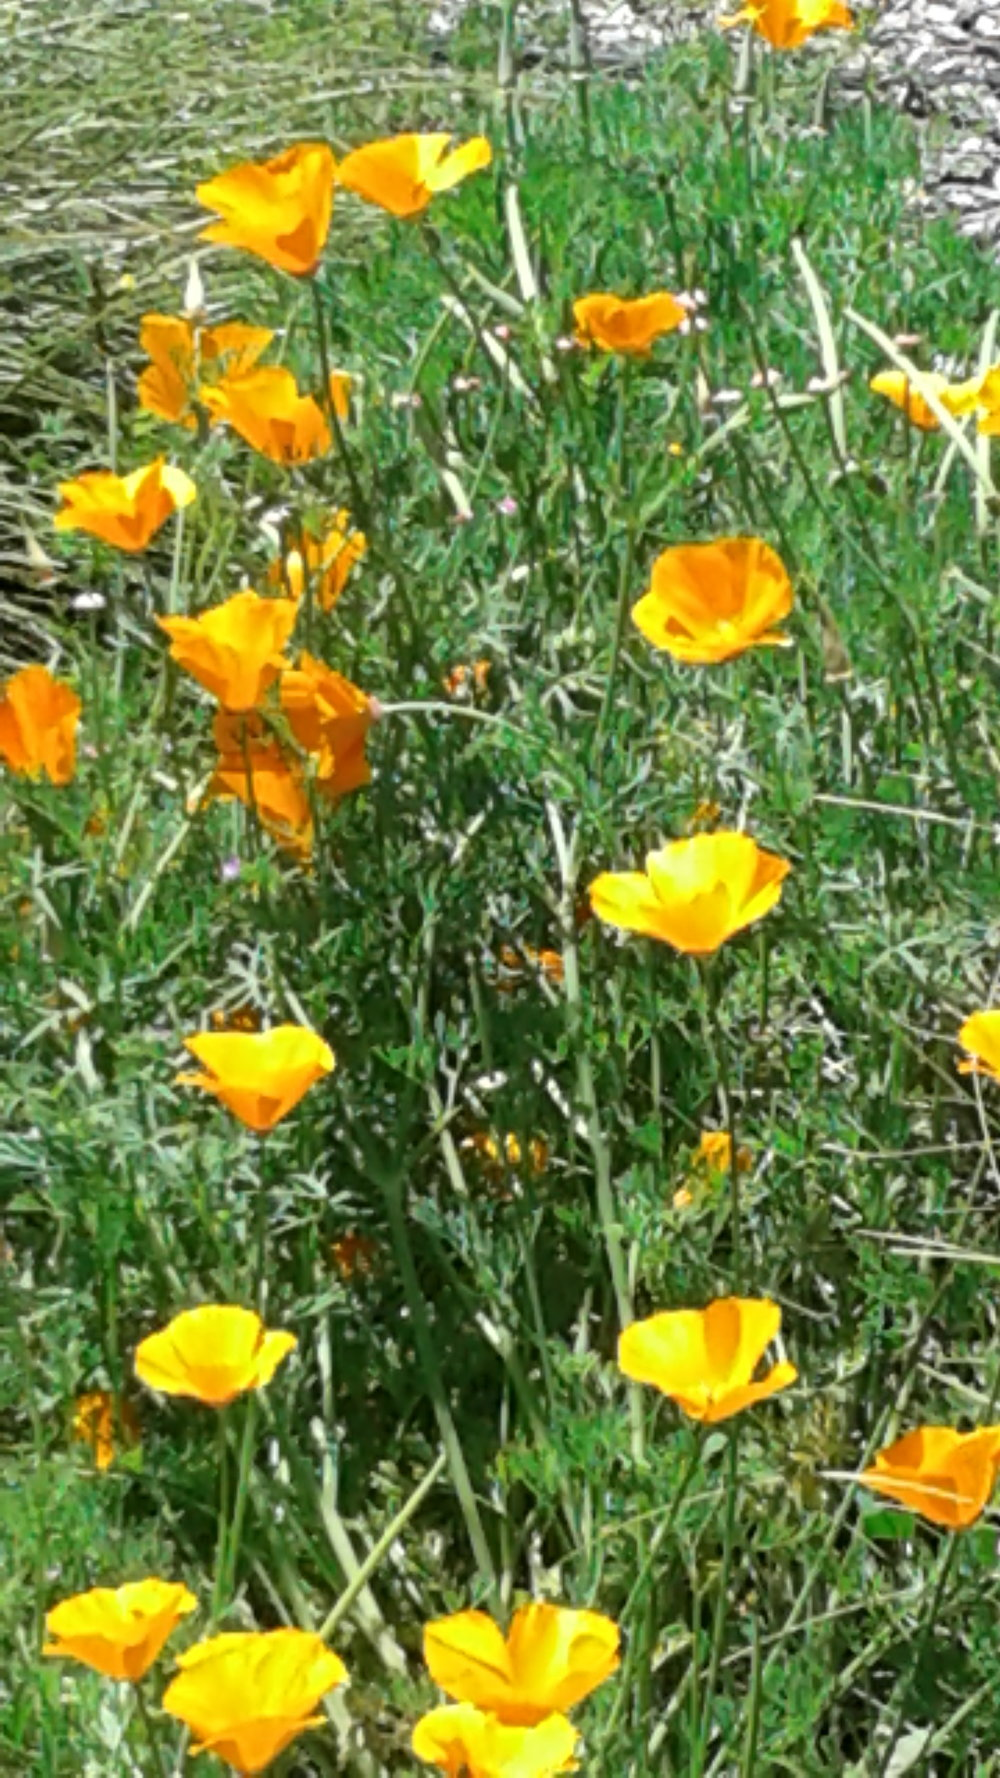 Poppies in the field 1.jpg